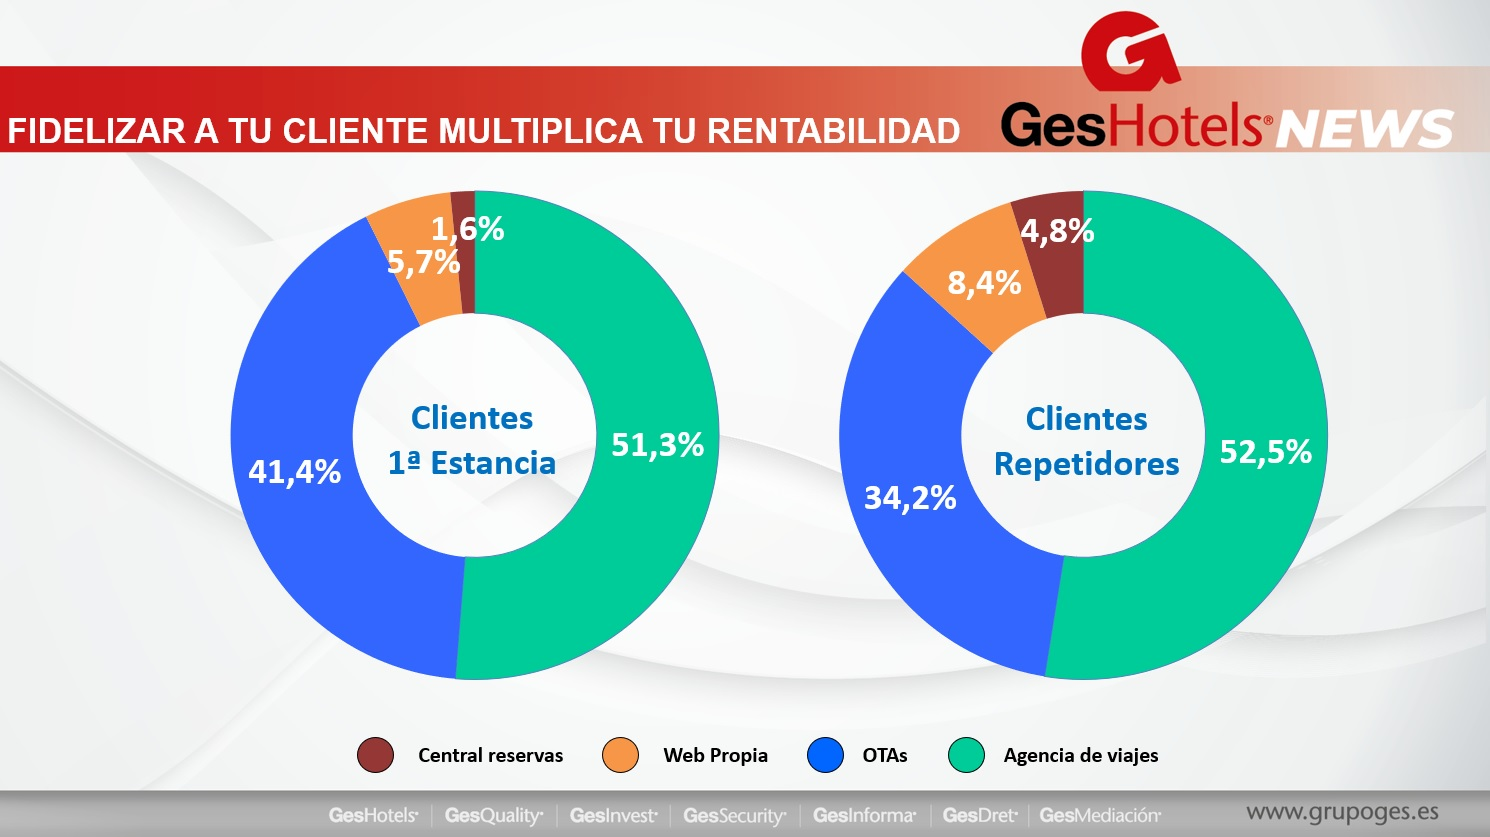 GESHOTELS NEWS ENERO